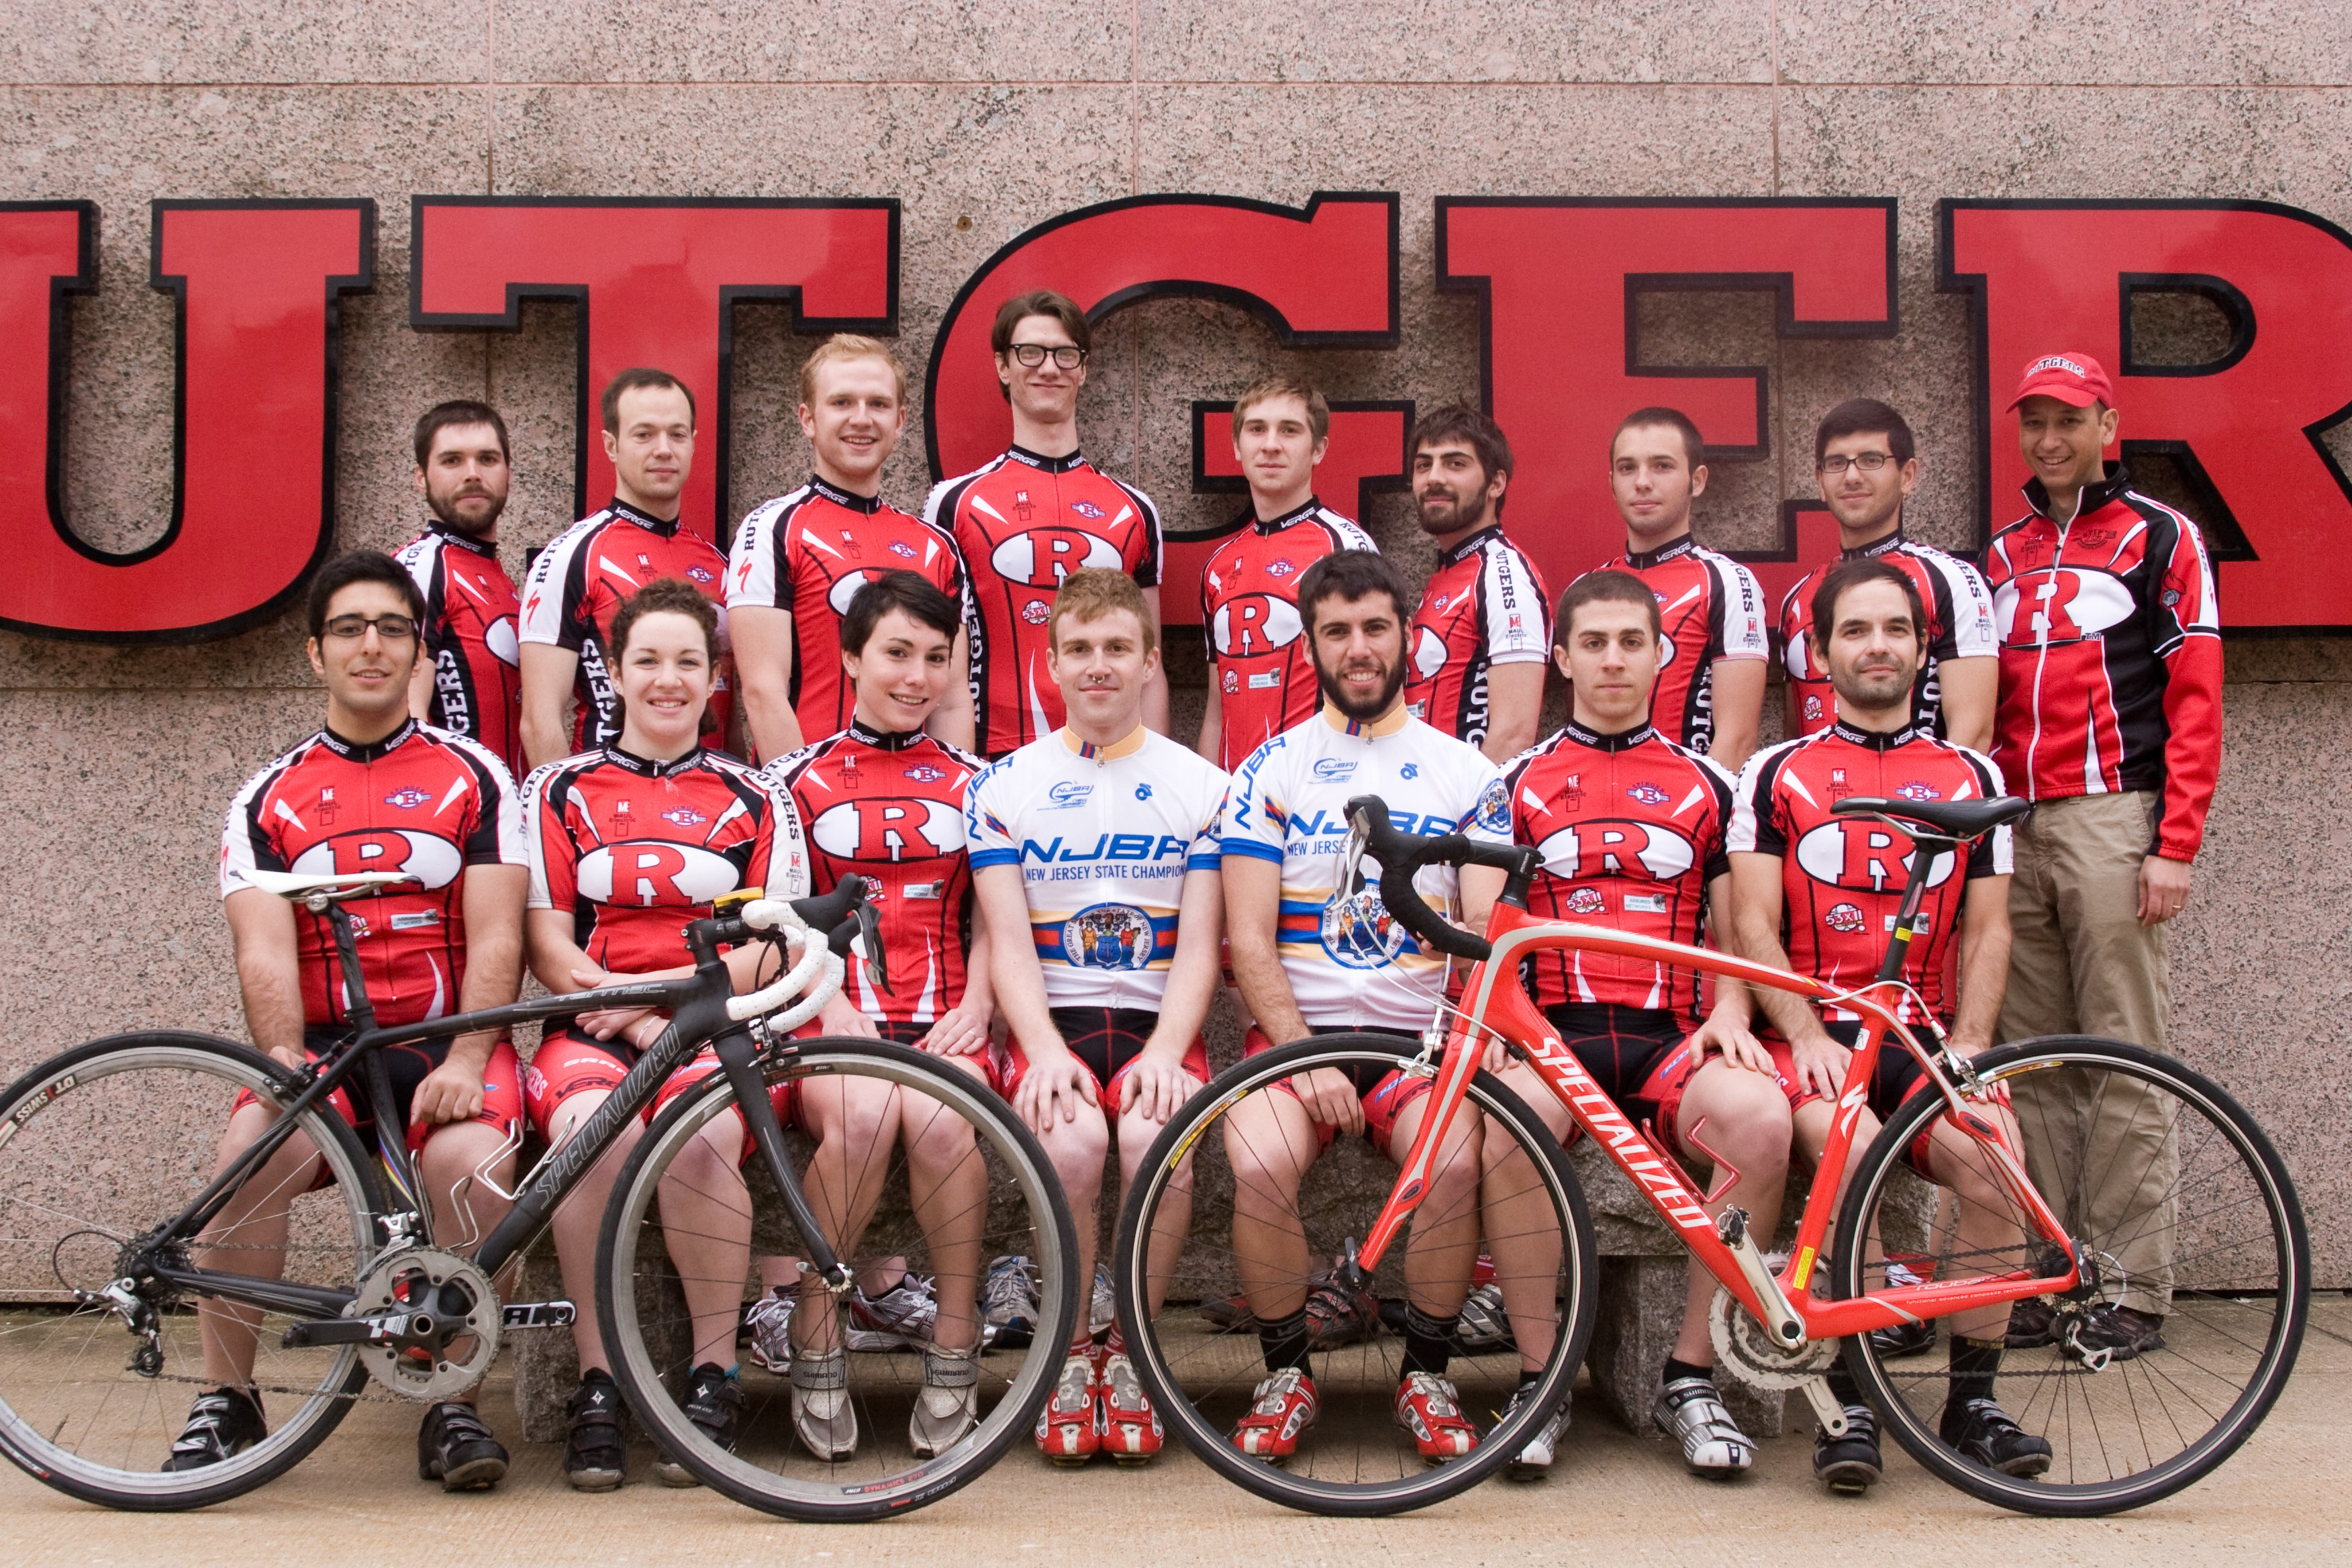 Cycling team1